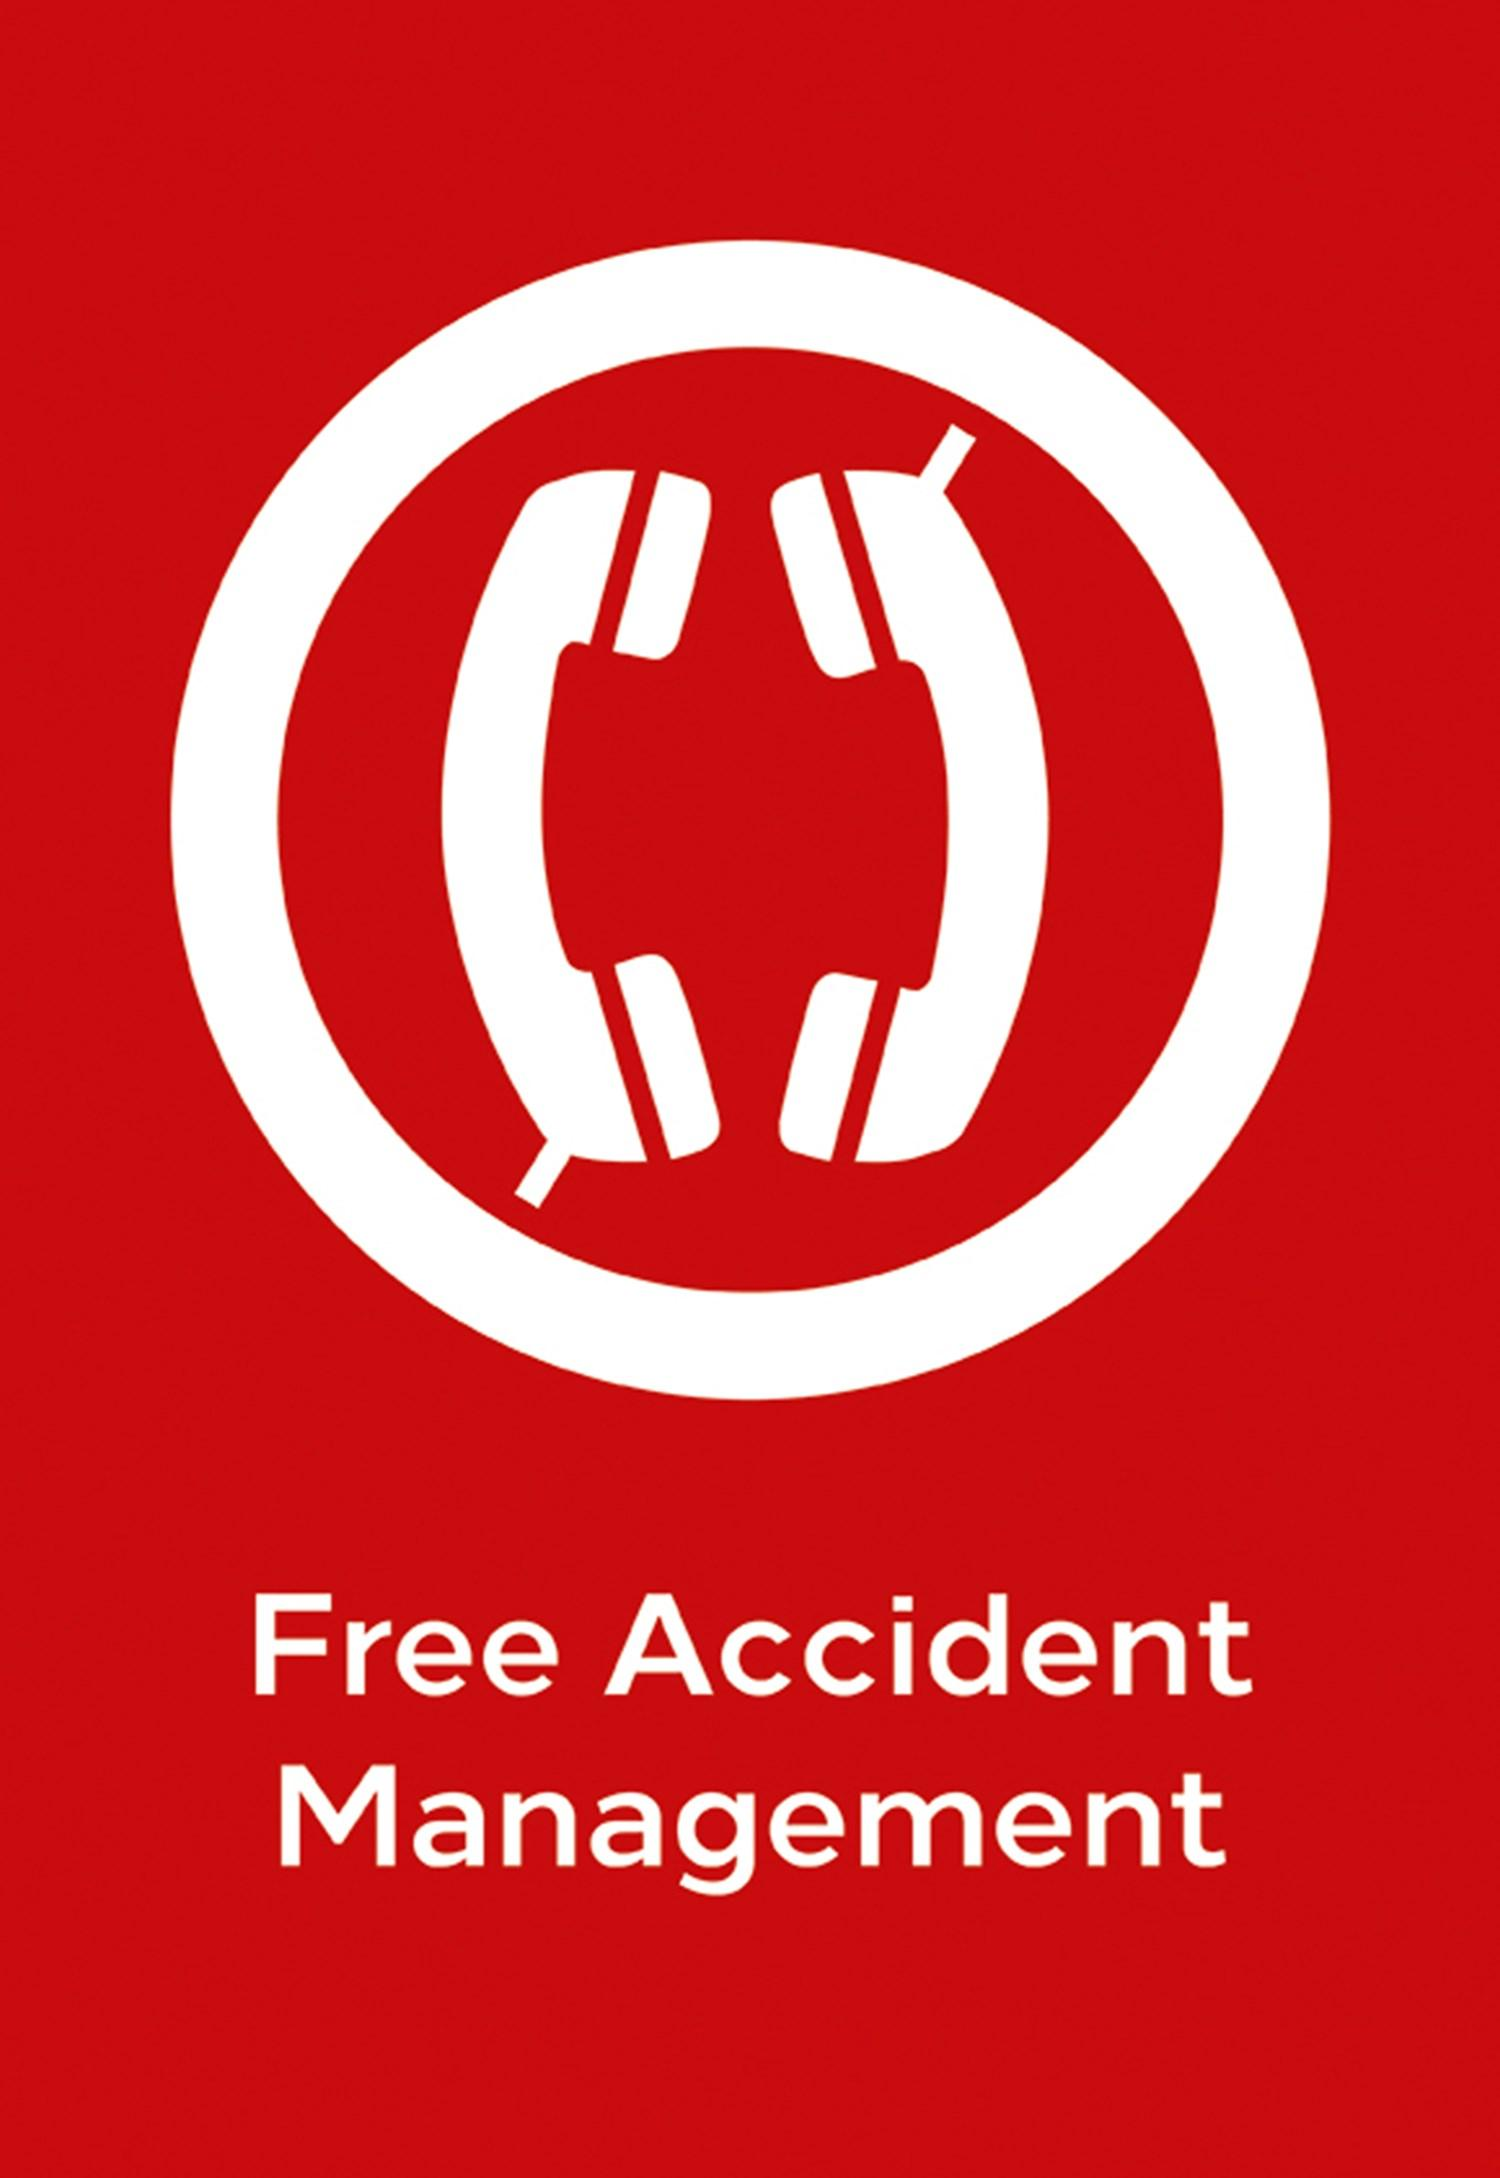 Free Accident Management  In the unfortunate event that your vehicle is involved in an incident, the Vauxhall Accident Management Service will help. They contact your insurer, arrange for vehicle recovery, repair at a Vauxhall approved repairer, organise a courtesy car and the return of your vehicle.